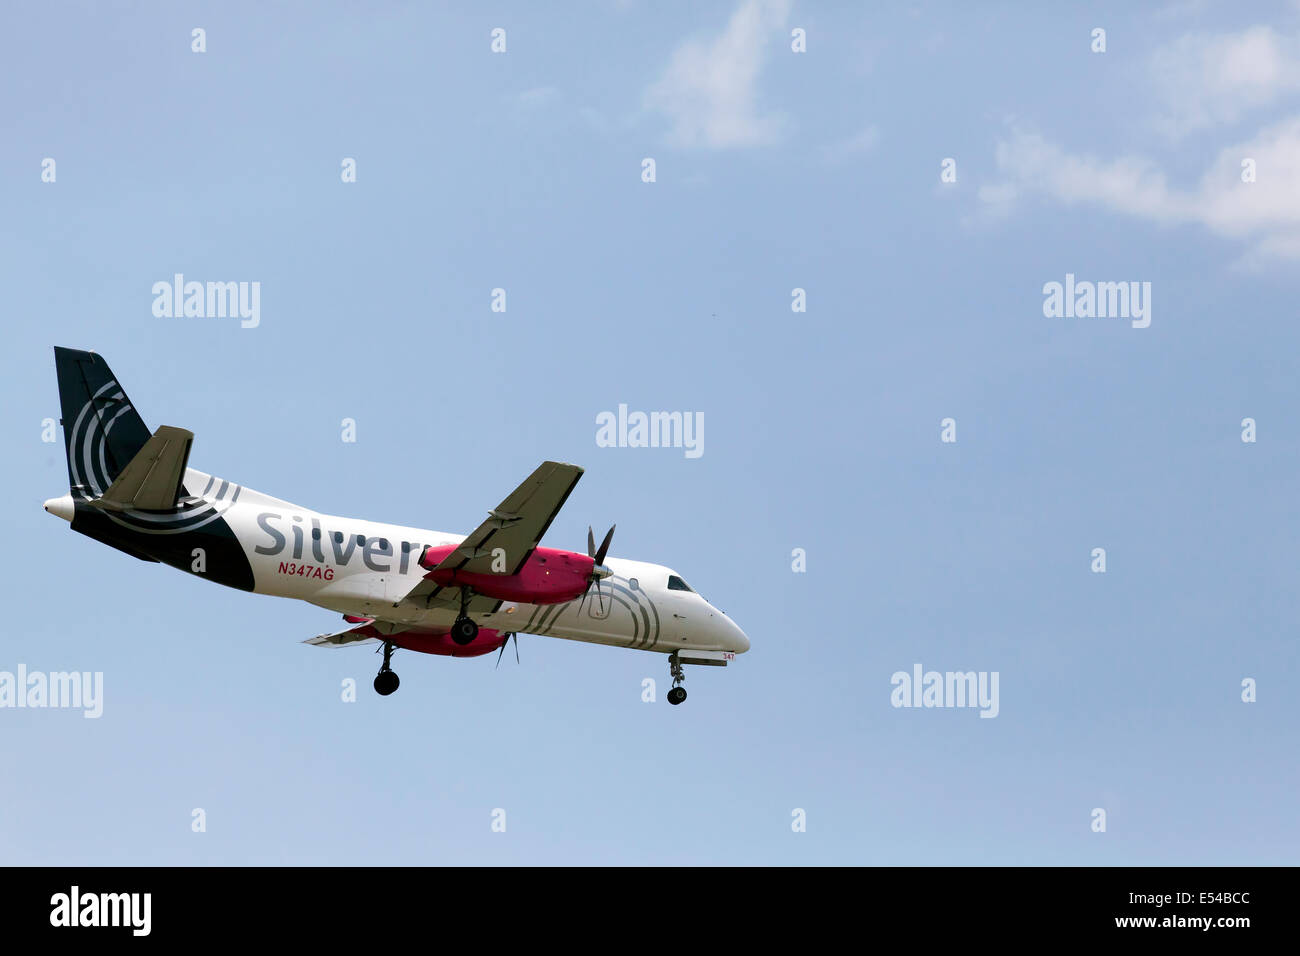 Saab 340B, a private twin prop propeller plane with the Silverado logo landing. - Stock Image